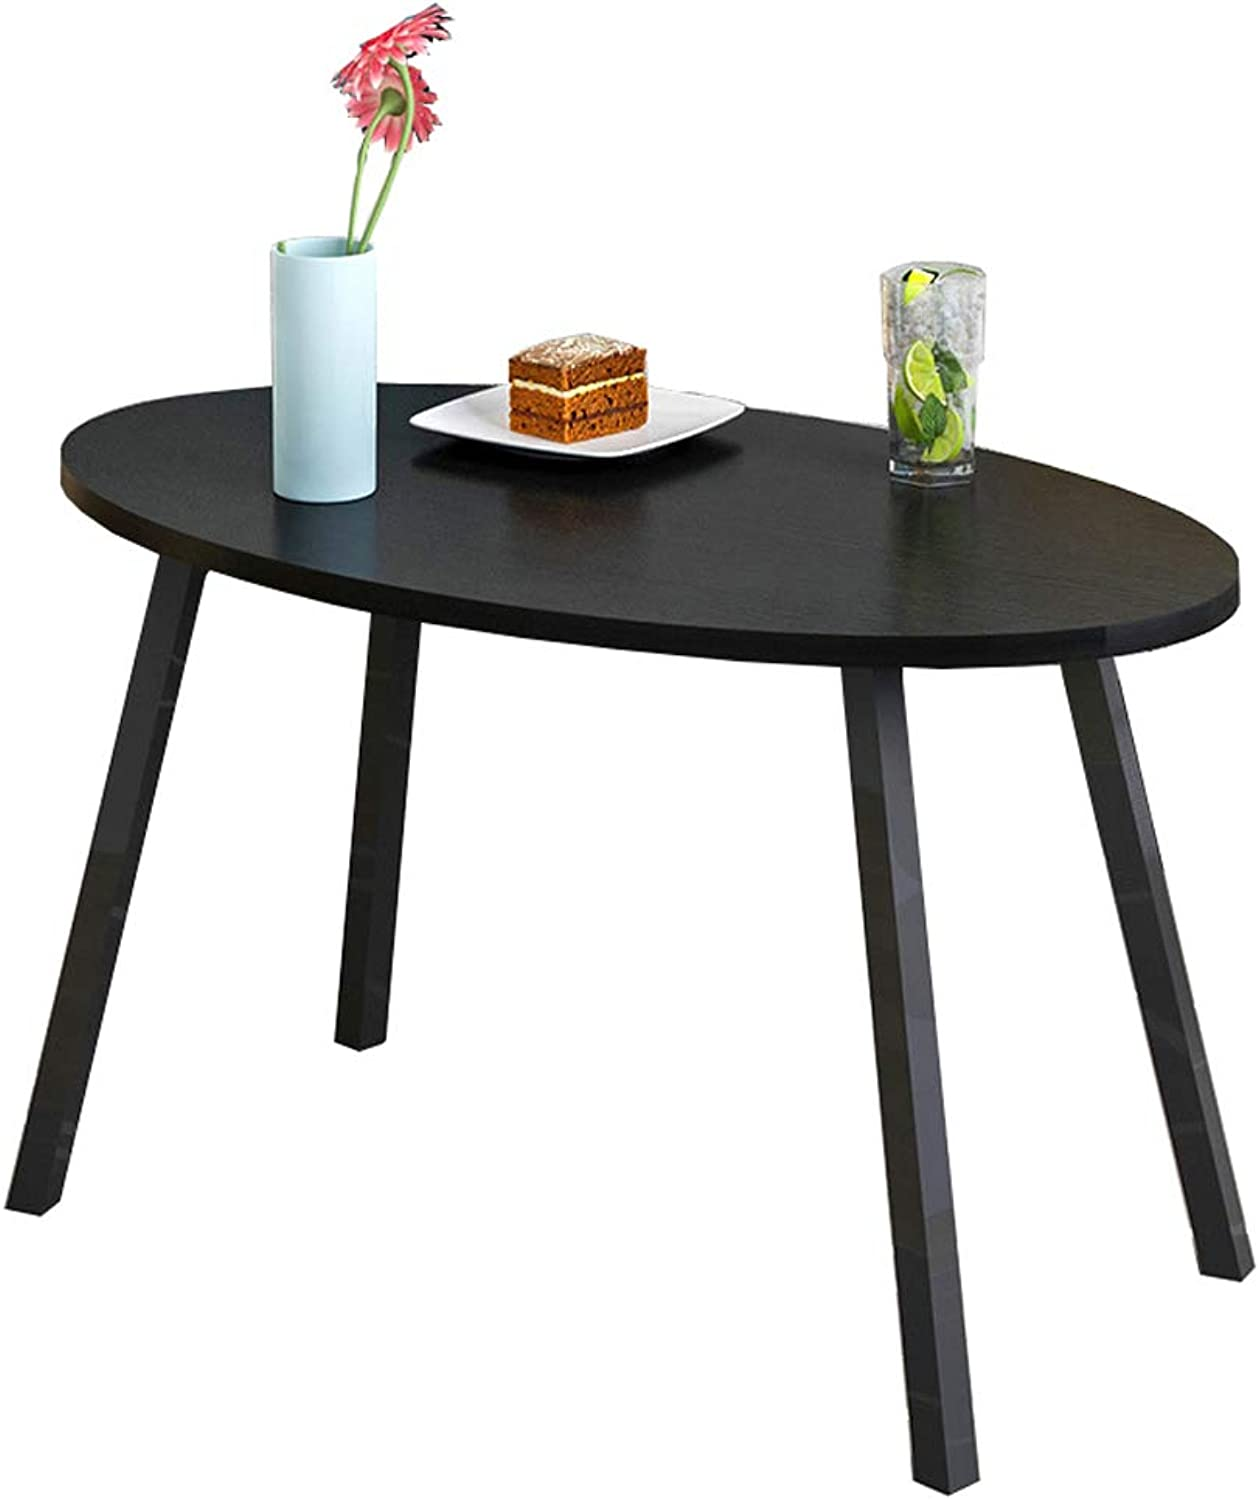 Coffee Table, Black Simple Mini Side A Few Bedrooms Small Round Table Sofa Side Table Creative Bedside Table (Size   80  48cm)